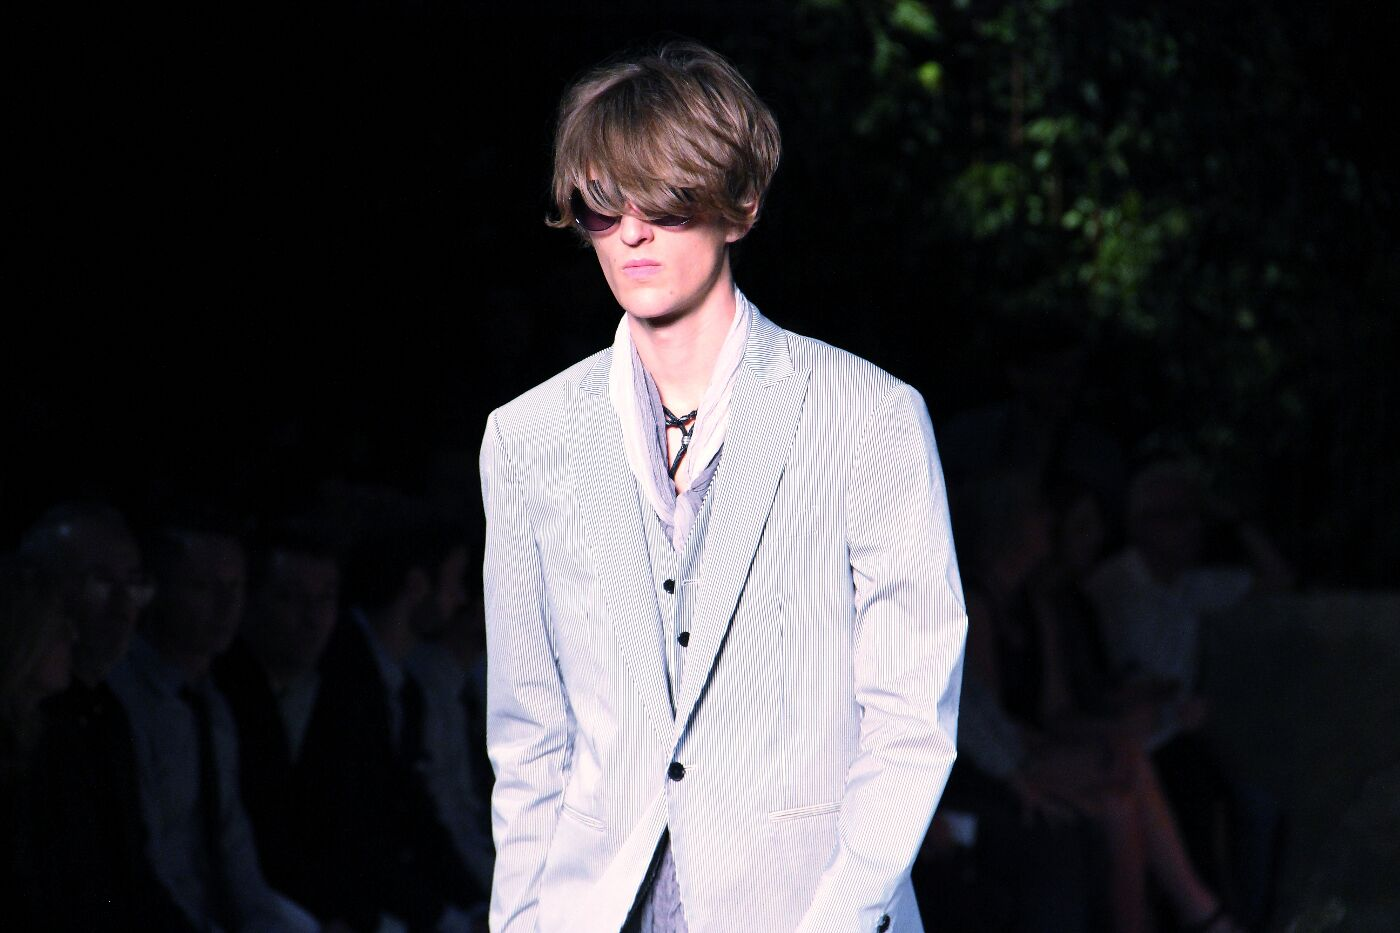 ss-john-varvatos-2012-ss-spring-summer-2012-milano-fashion-week-john-varvatos